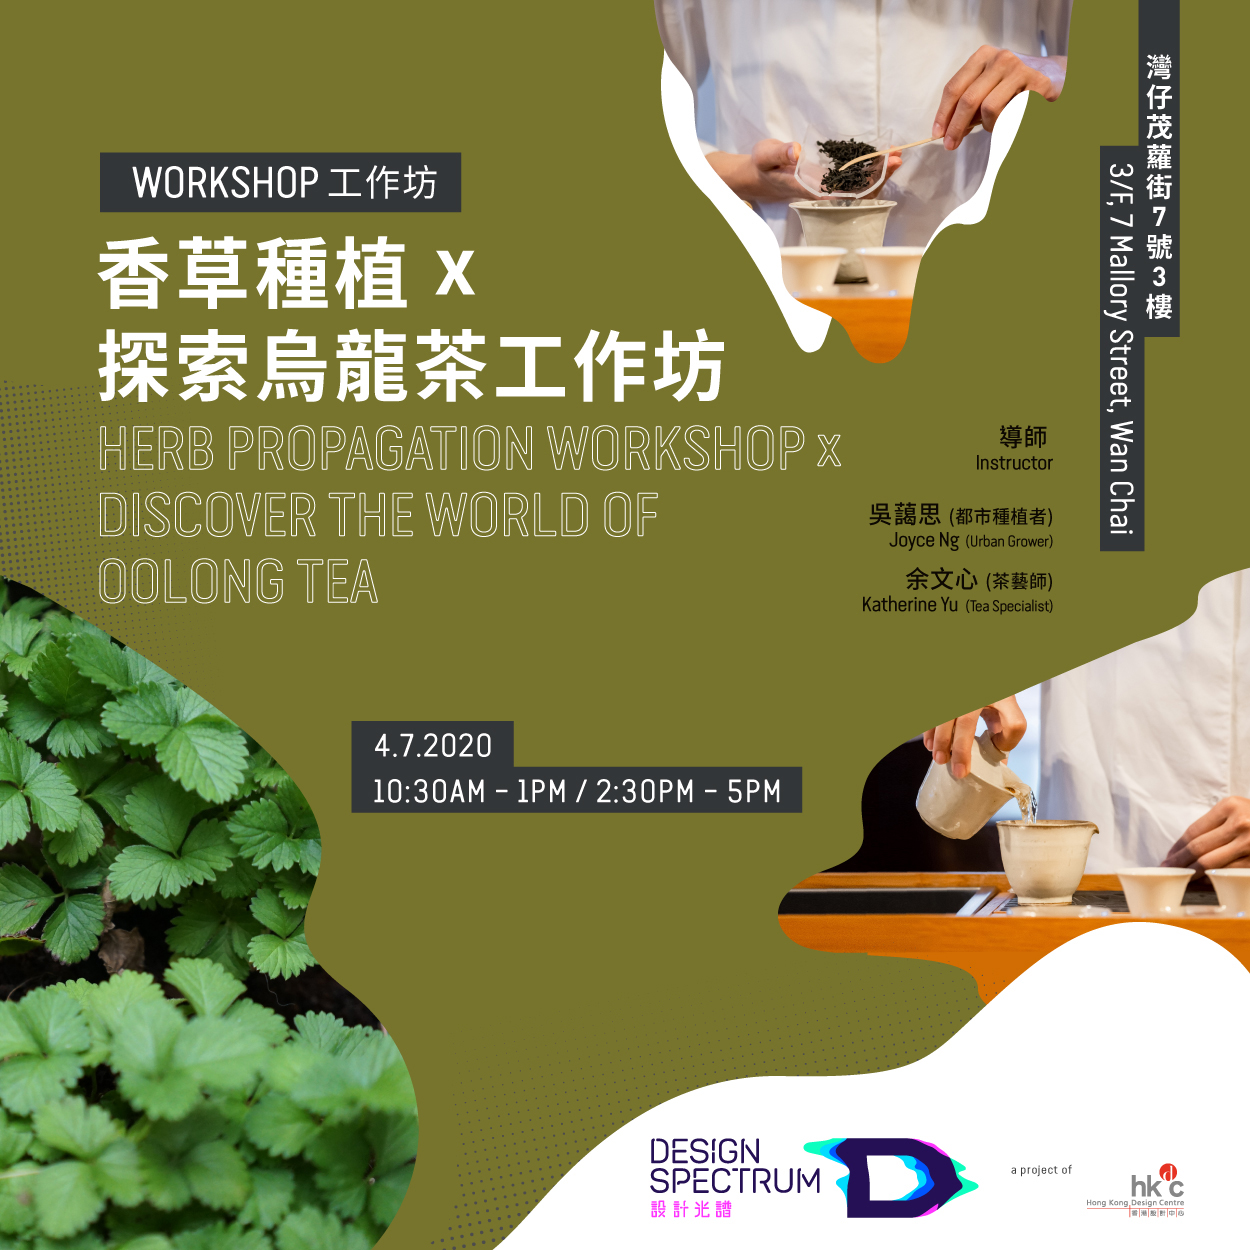 Design Spectrumherb-propagation-workshop-x-discover-the-world-of-oolong-tea